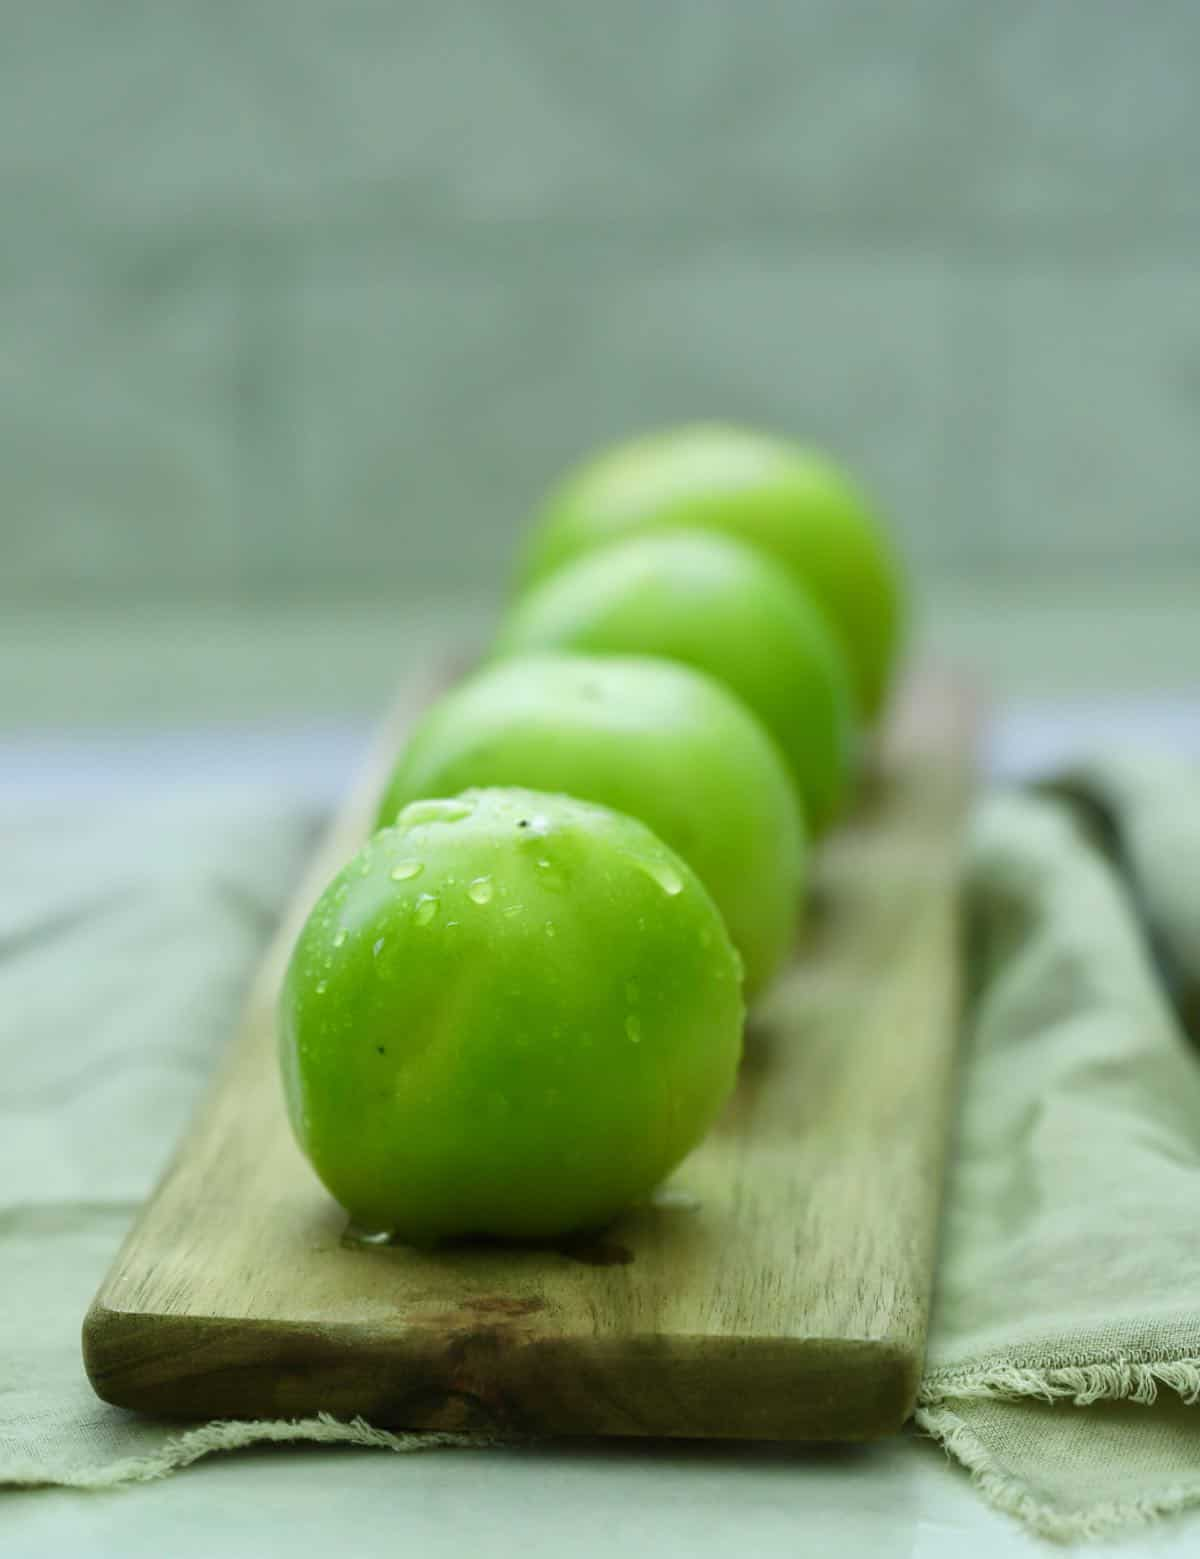 Four green tomatoes on a small cutting board.